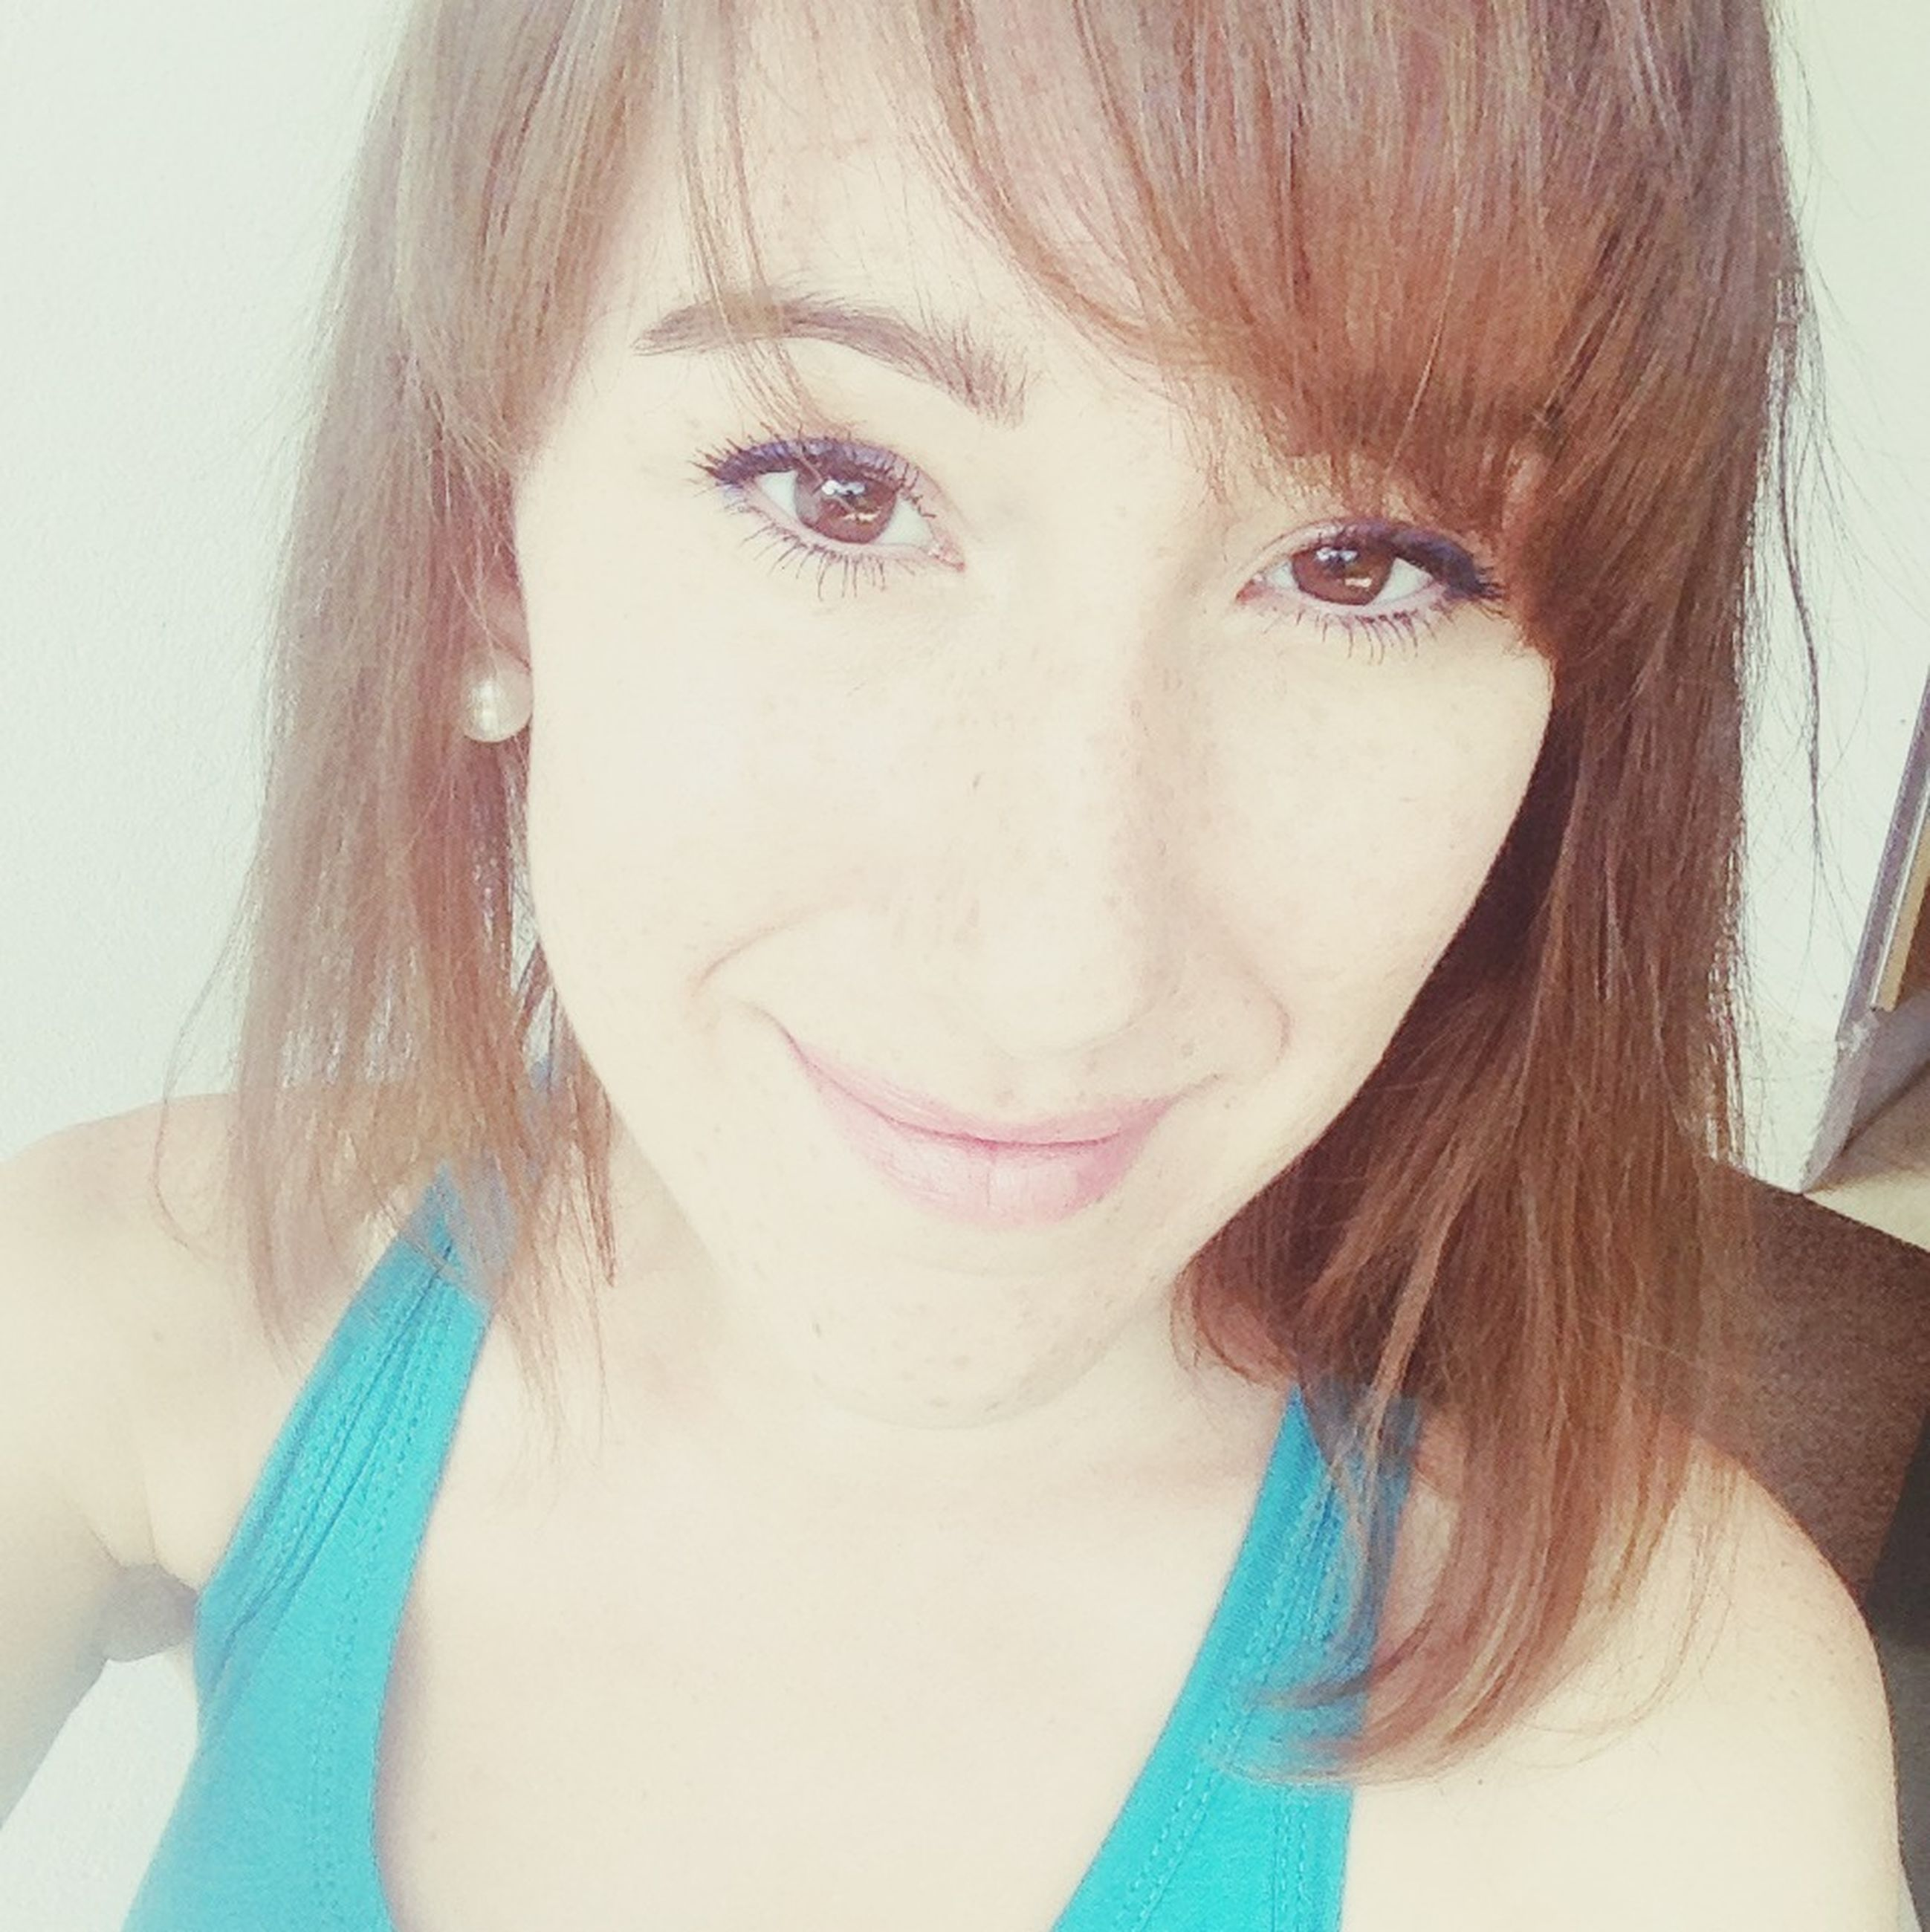 young adult, young women, headshot, person, looking at camera, portrait, long hair, lifestyles, front view, close-up, indoors, leisure activity, beauty, smiling, human face, head and shoulders, black hair